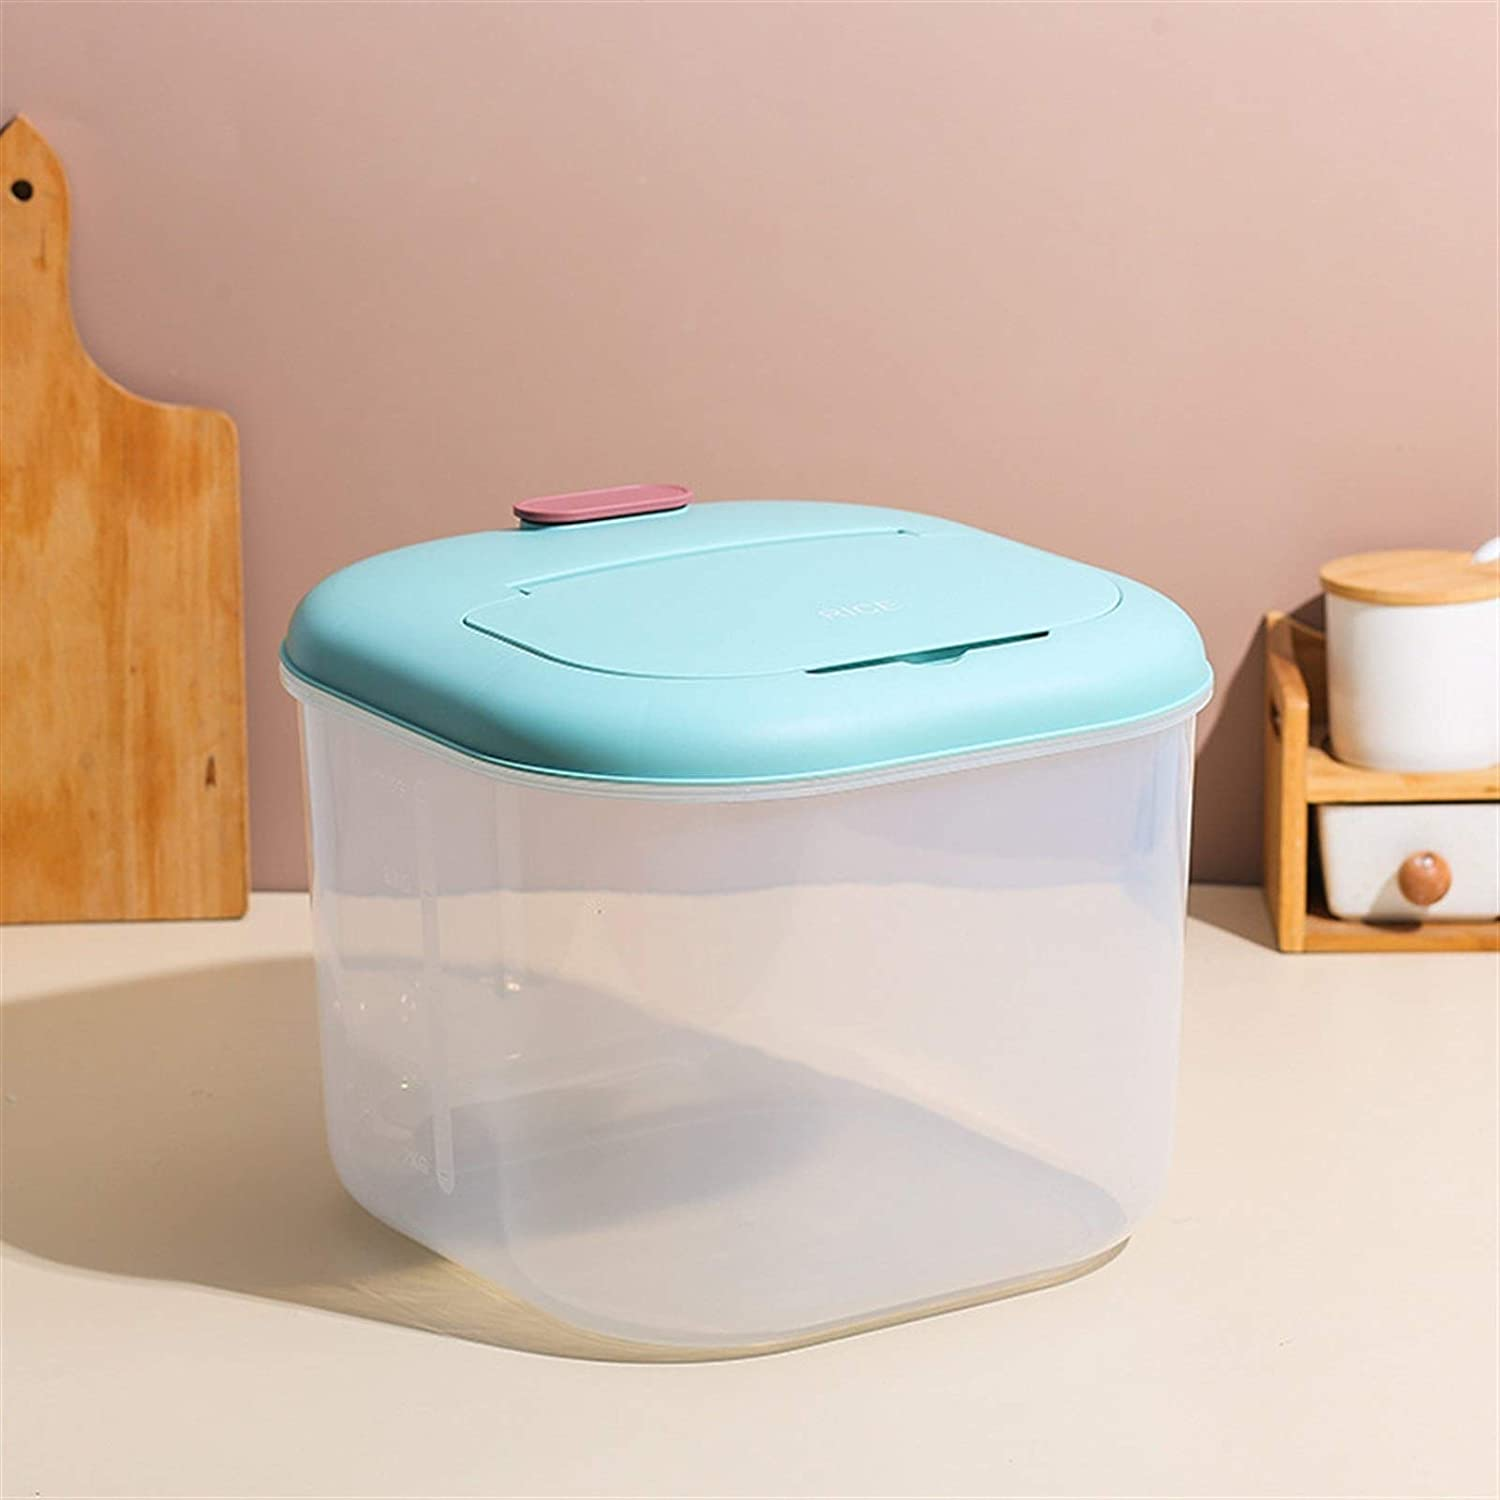 JIEKES Selling and selling Rice Storage Box,Kitchen Home can Gra Max 83% OFF Flipped Sealed be